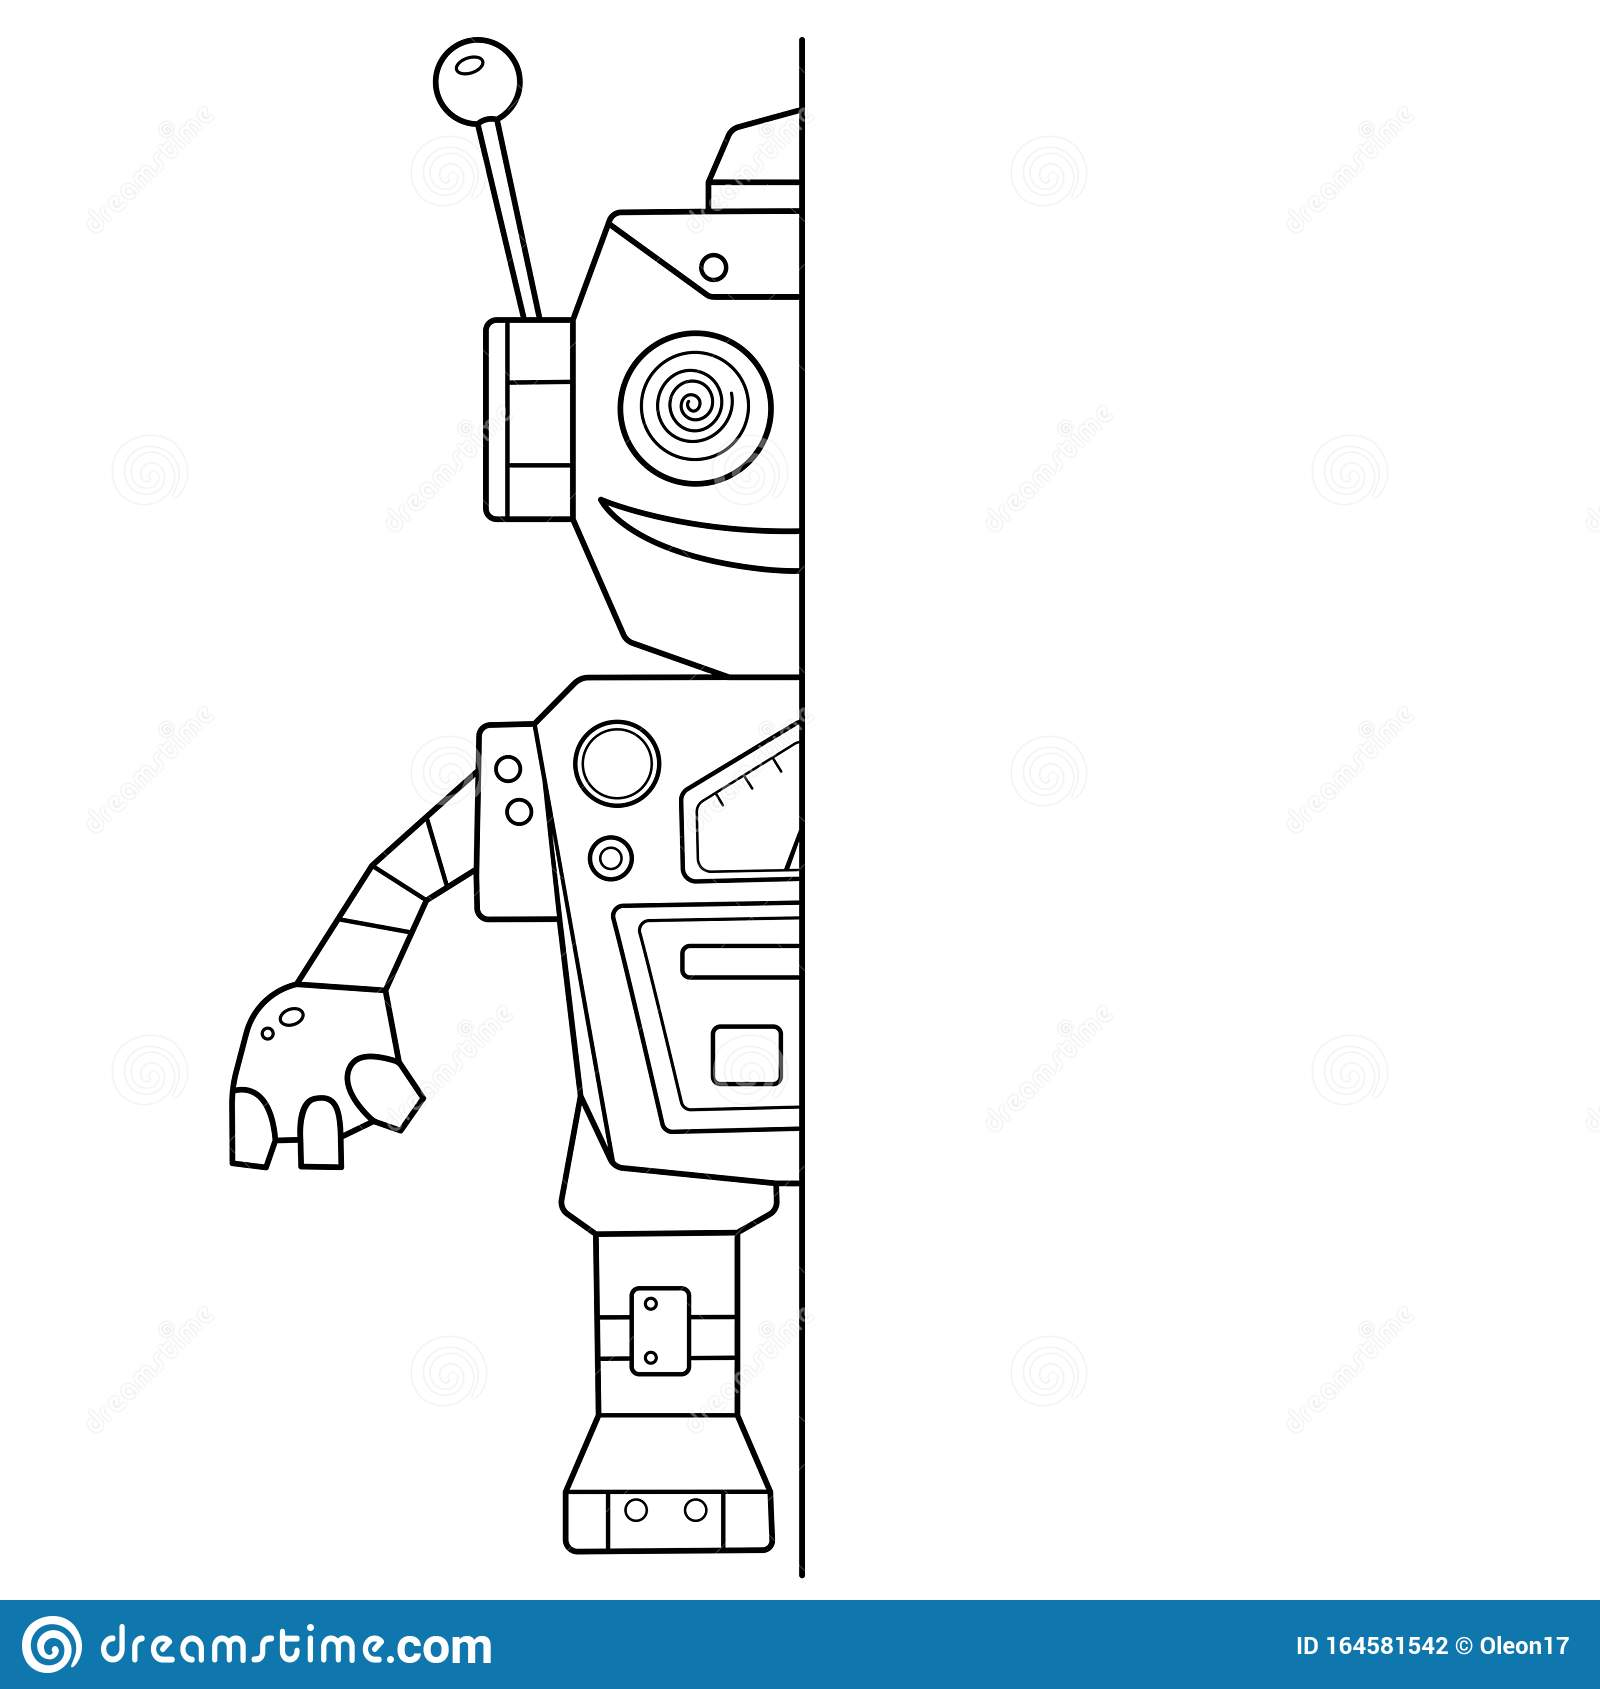 Ben 10 Alien Force Spidermonkey coloring page | Free Printable ... | 1689x1600